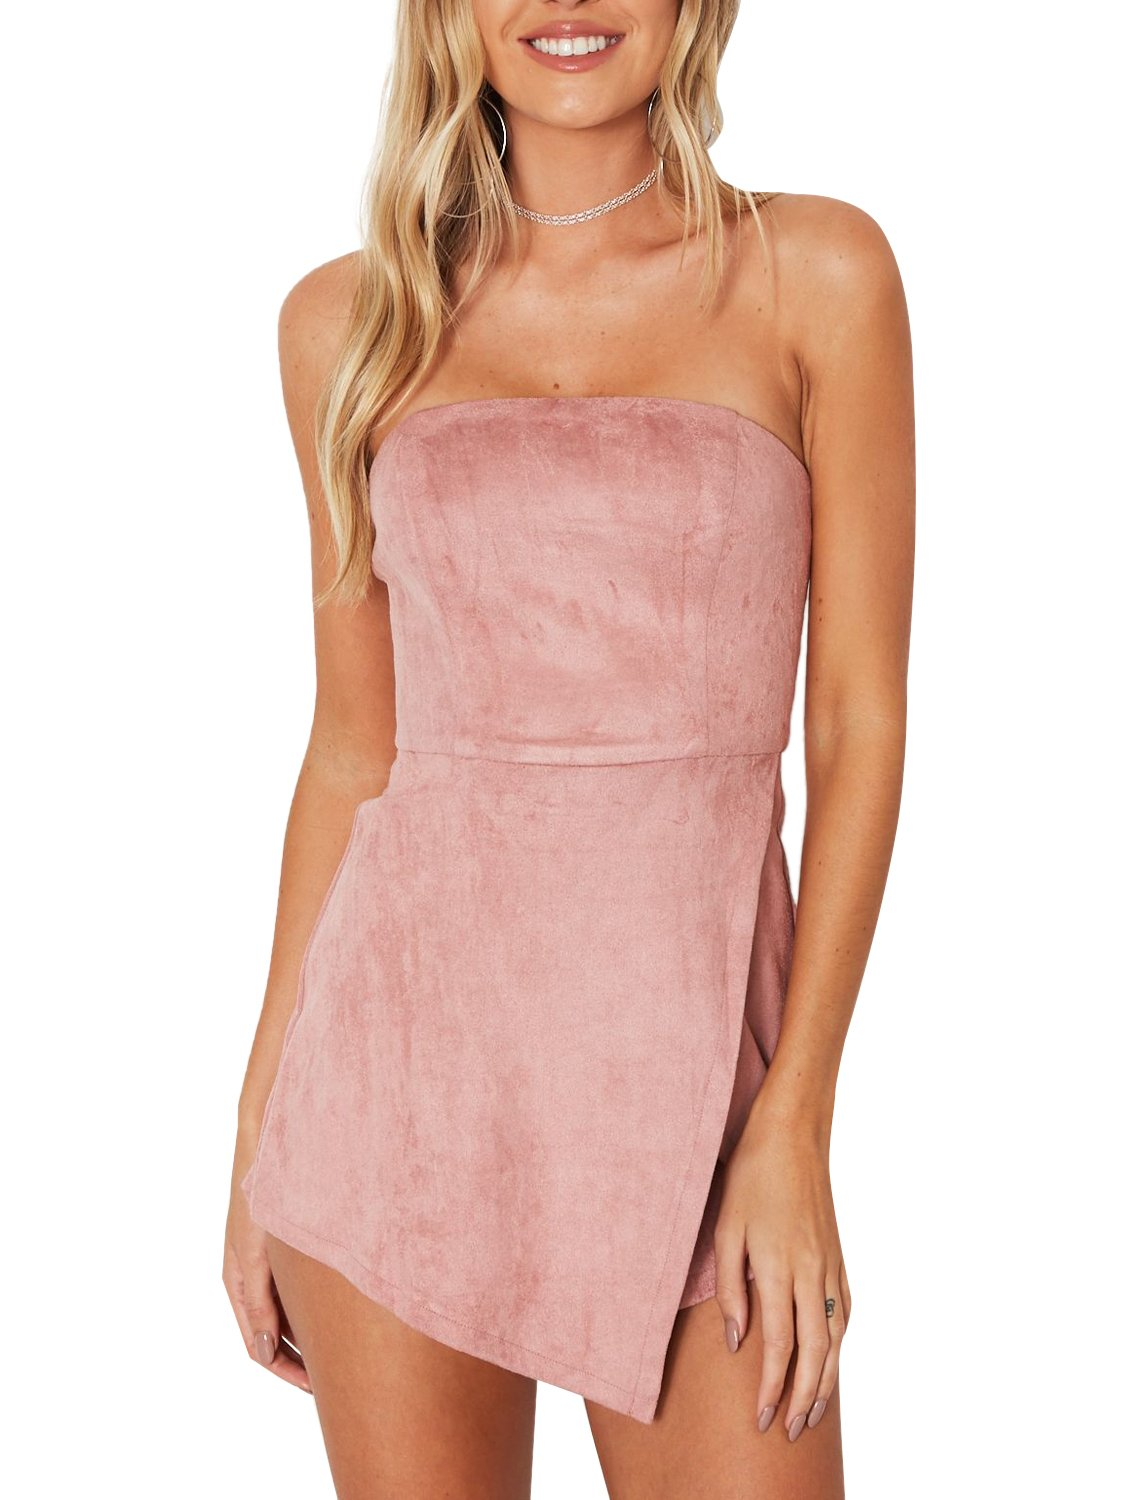 Simplee Women's Leather Suede Sexy Strapless Jumpsuit Romper Party Clubwear Pink 4/6